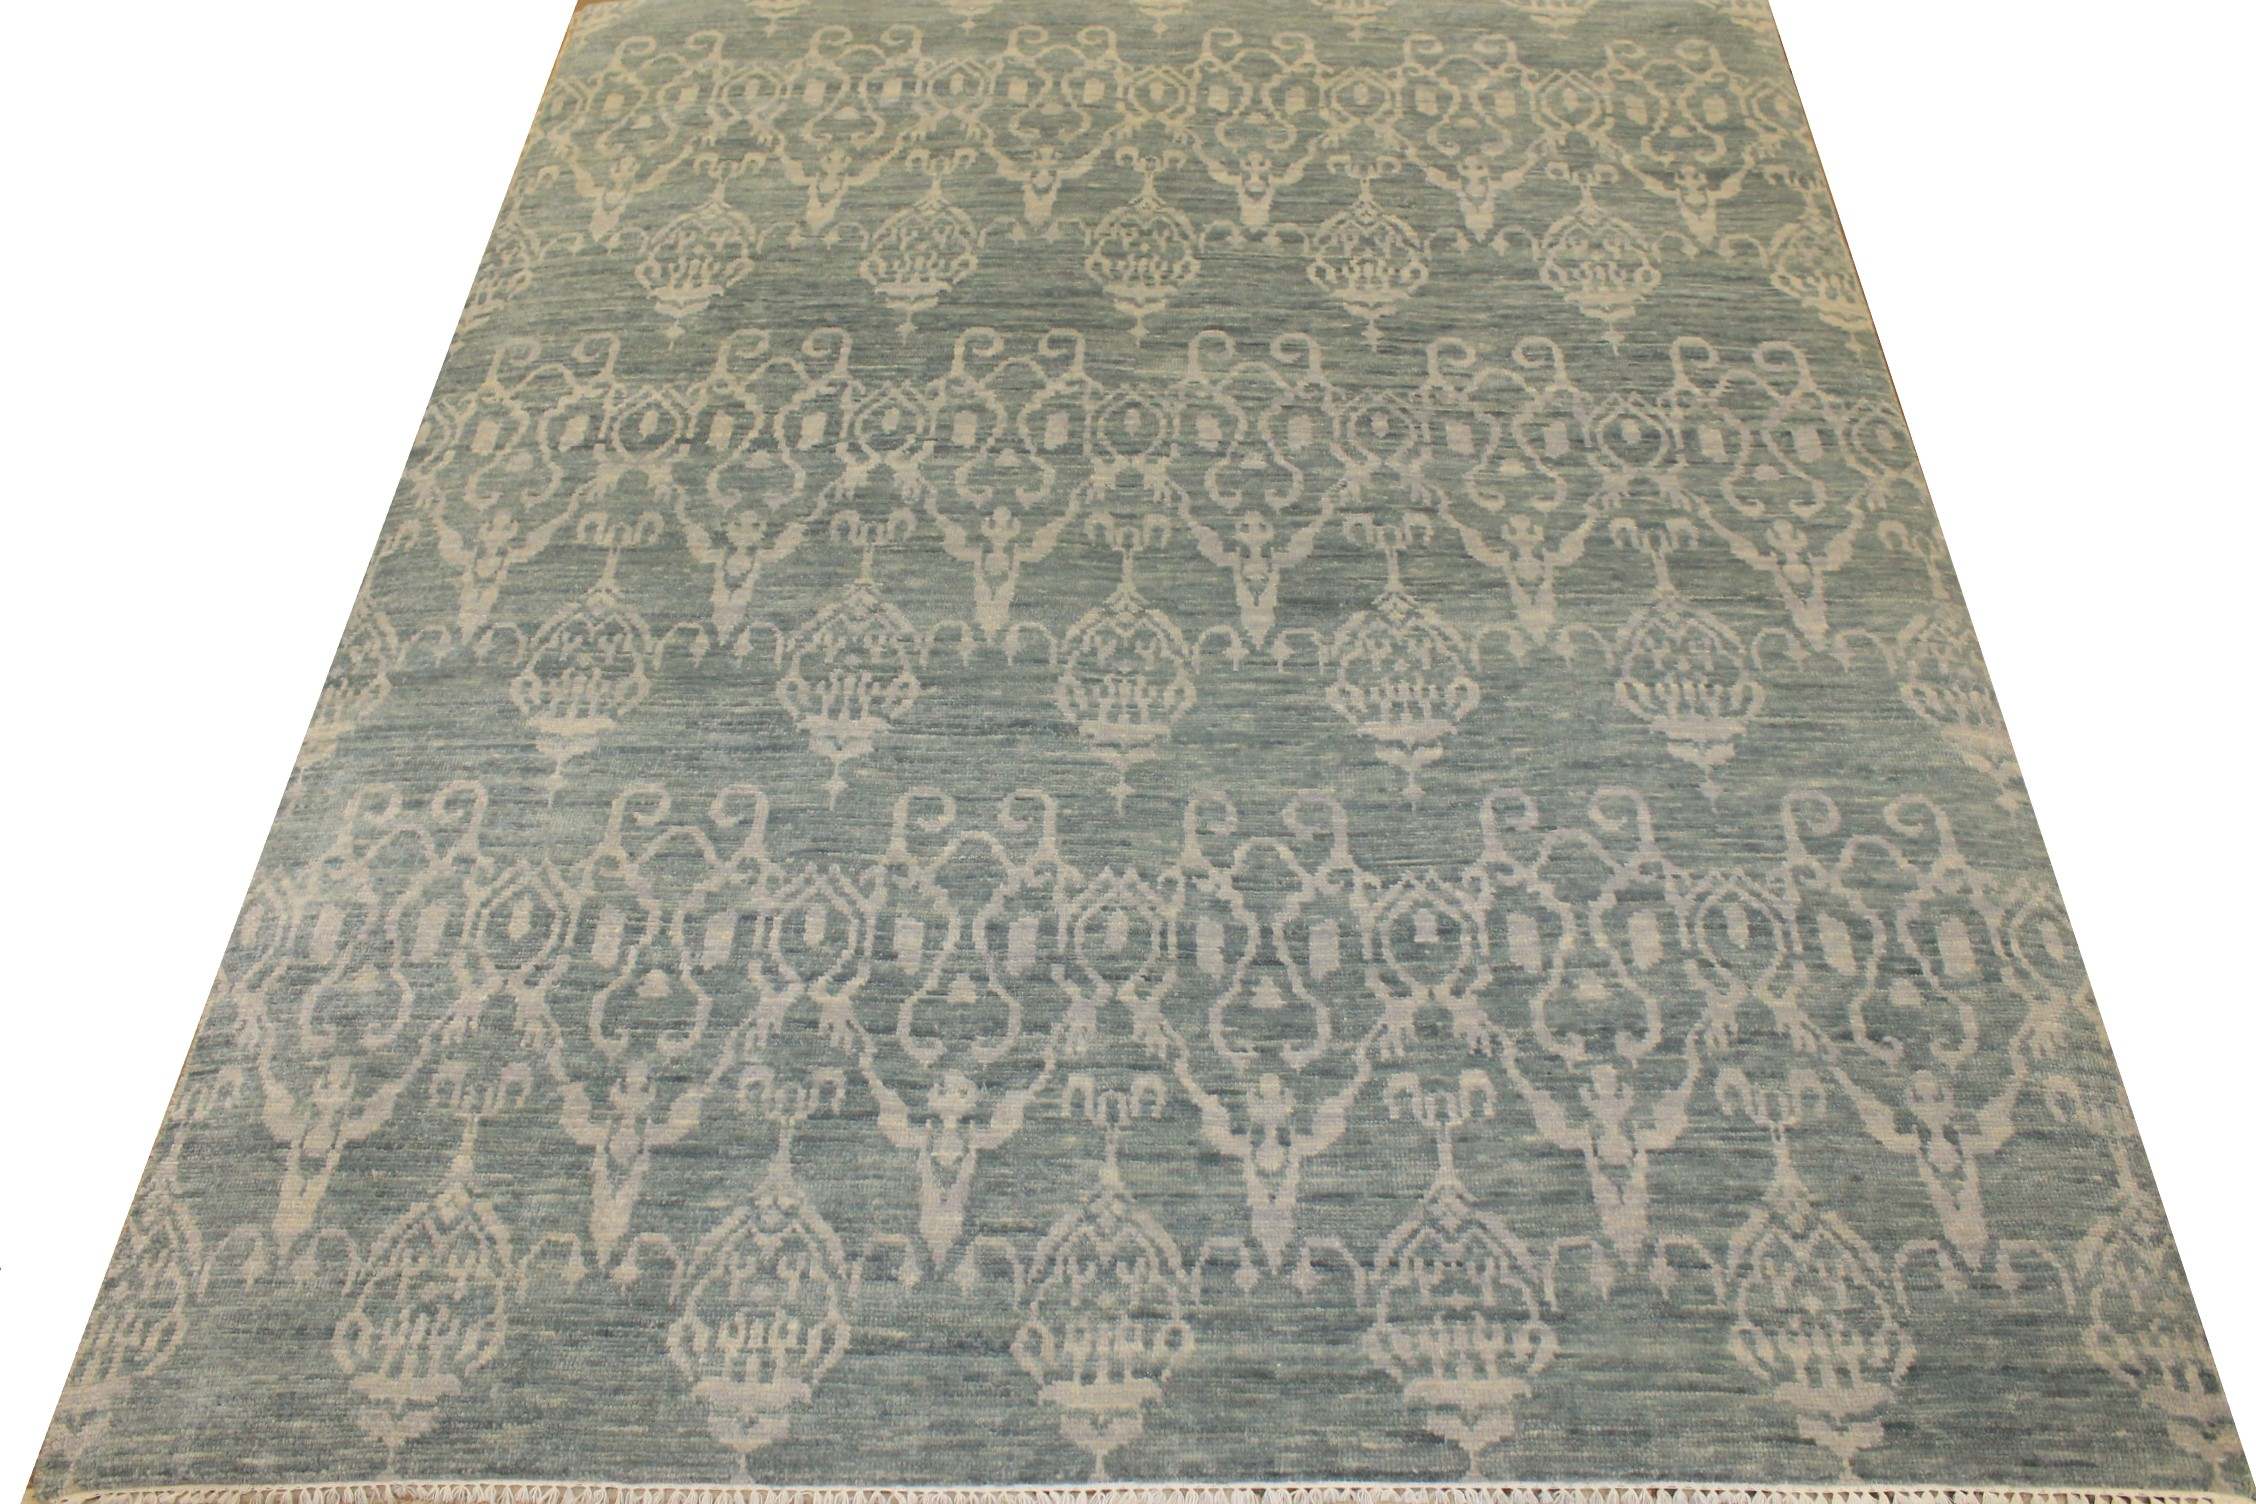 8x10 Contemporary Hand Knotted Wool Area Rug - MR18517